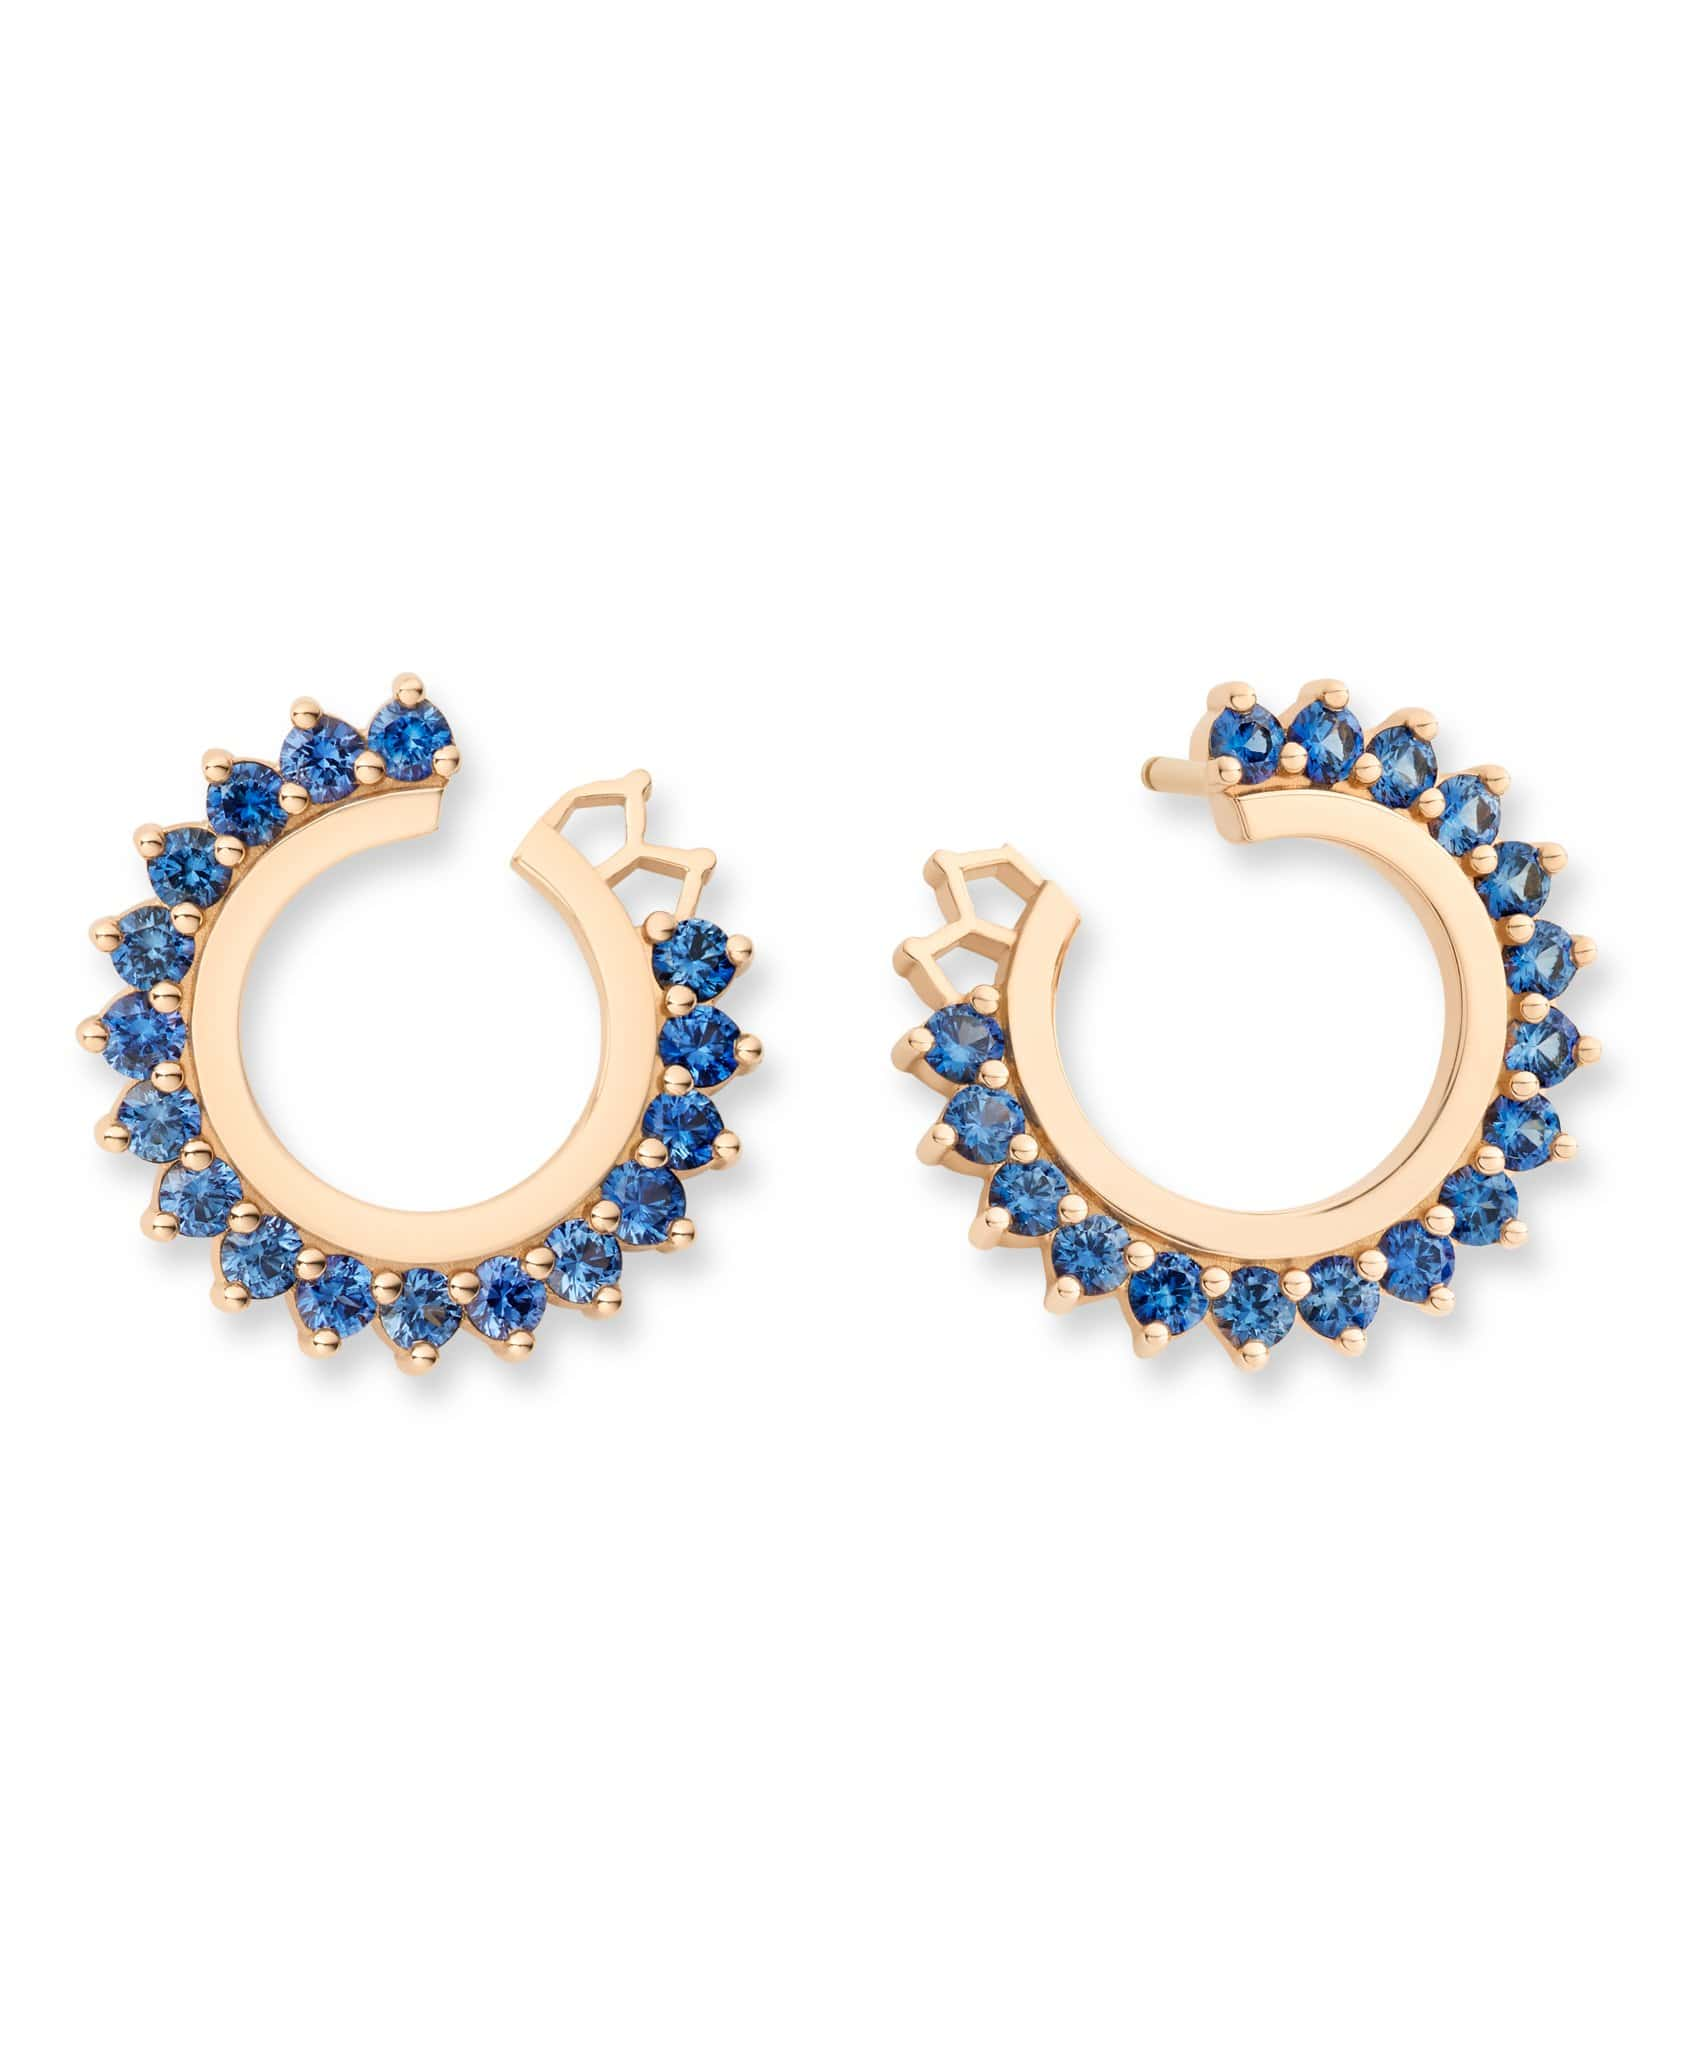 Blue Sapphire Earrings - Nouvel Heritage